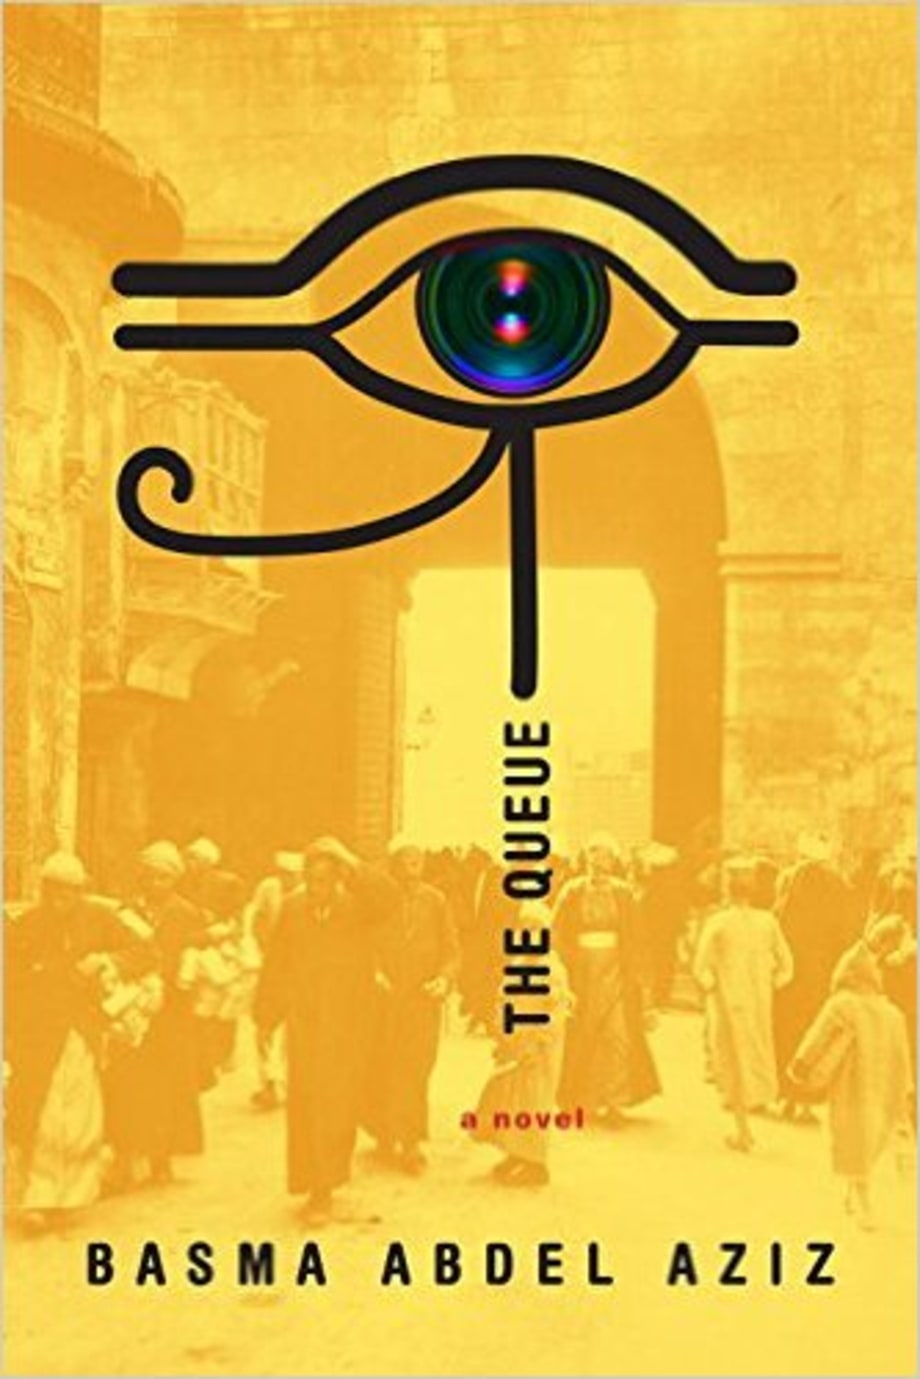 The Queue, Basma Abdel Aziz, translated by Elisabeth Jaquette